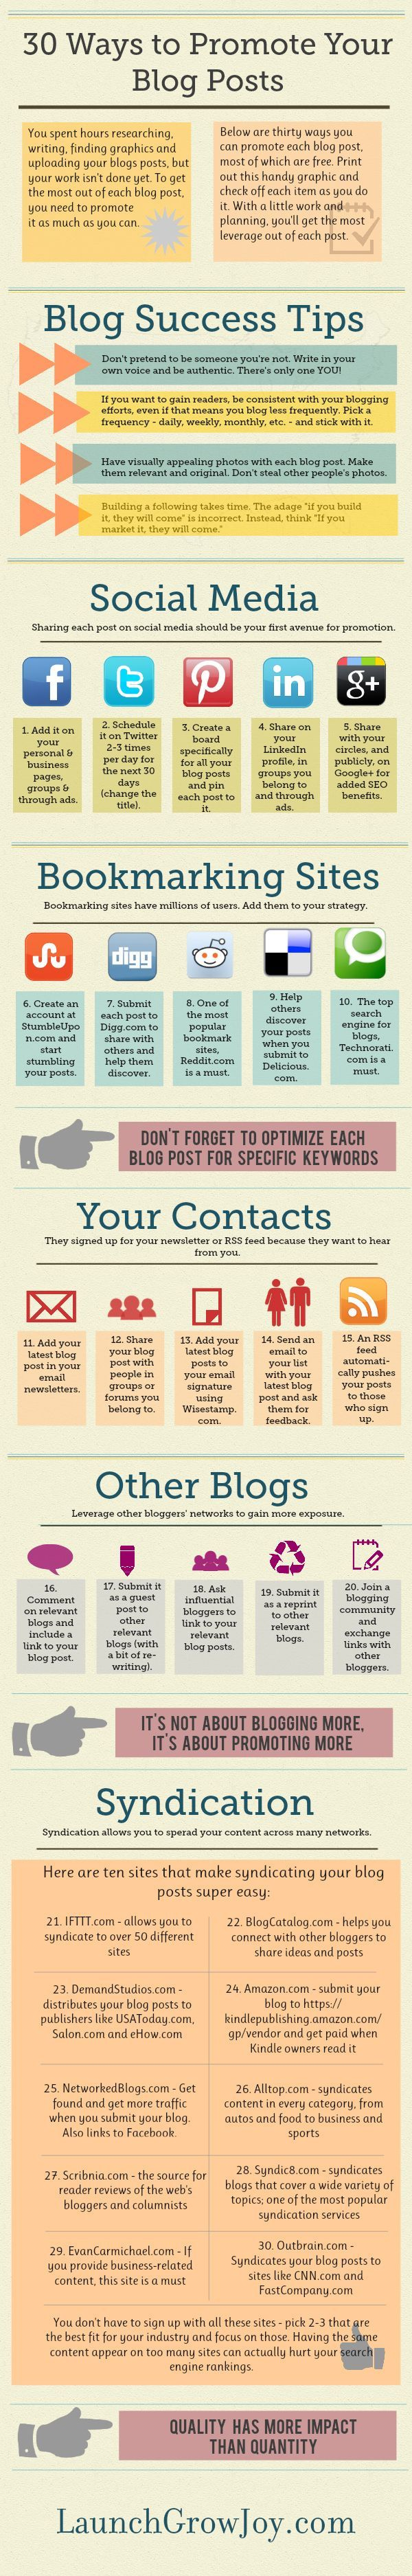 30 Ways To Help You Promote Your Blog Posts | Social Media For